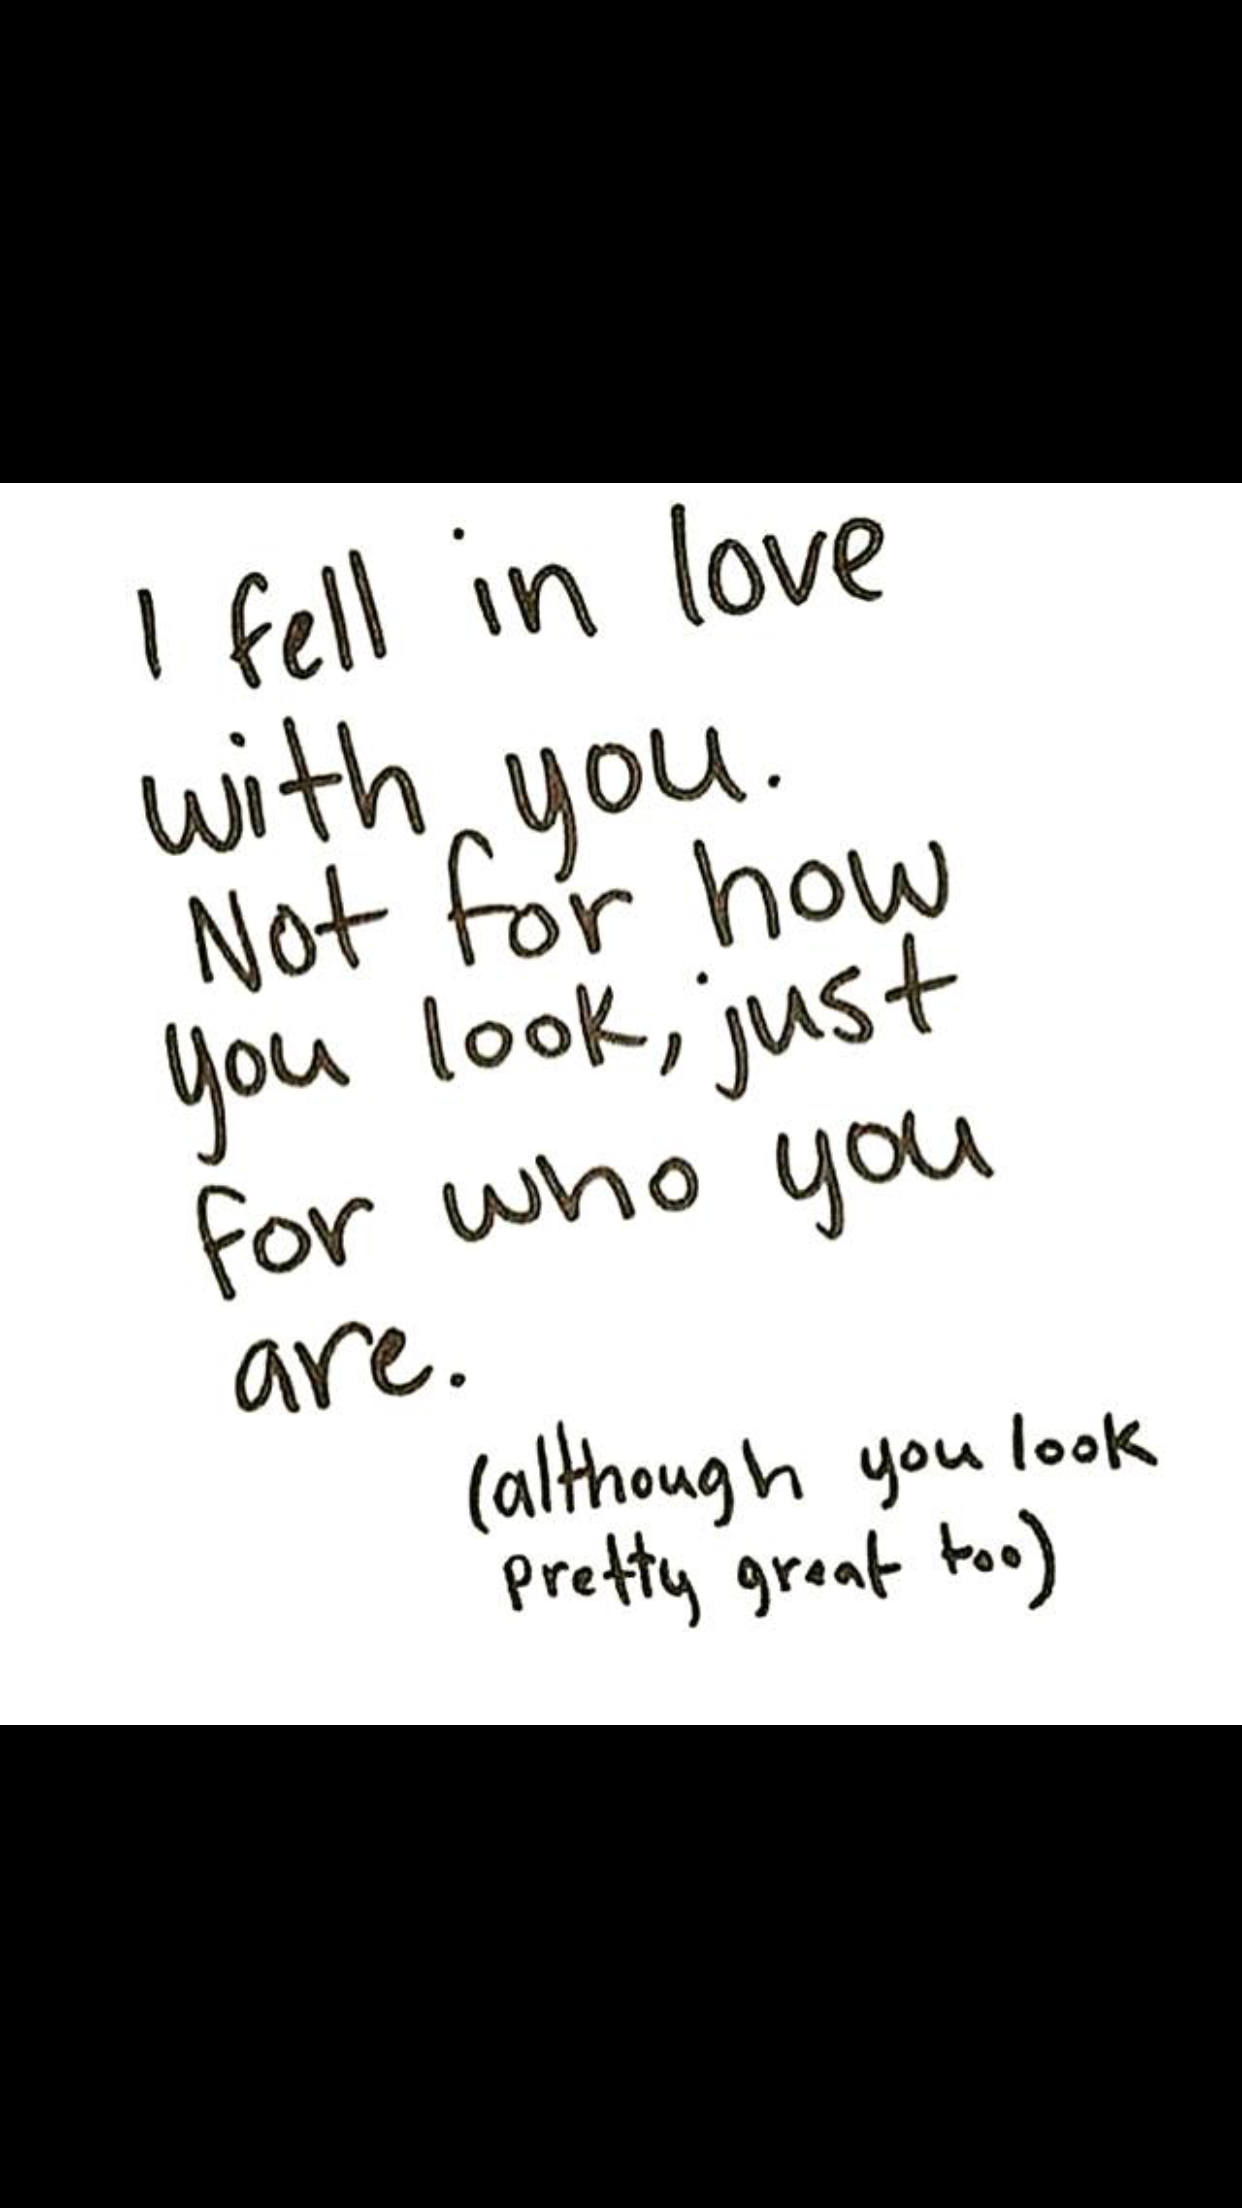 Why I love you too does not matter